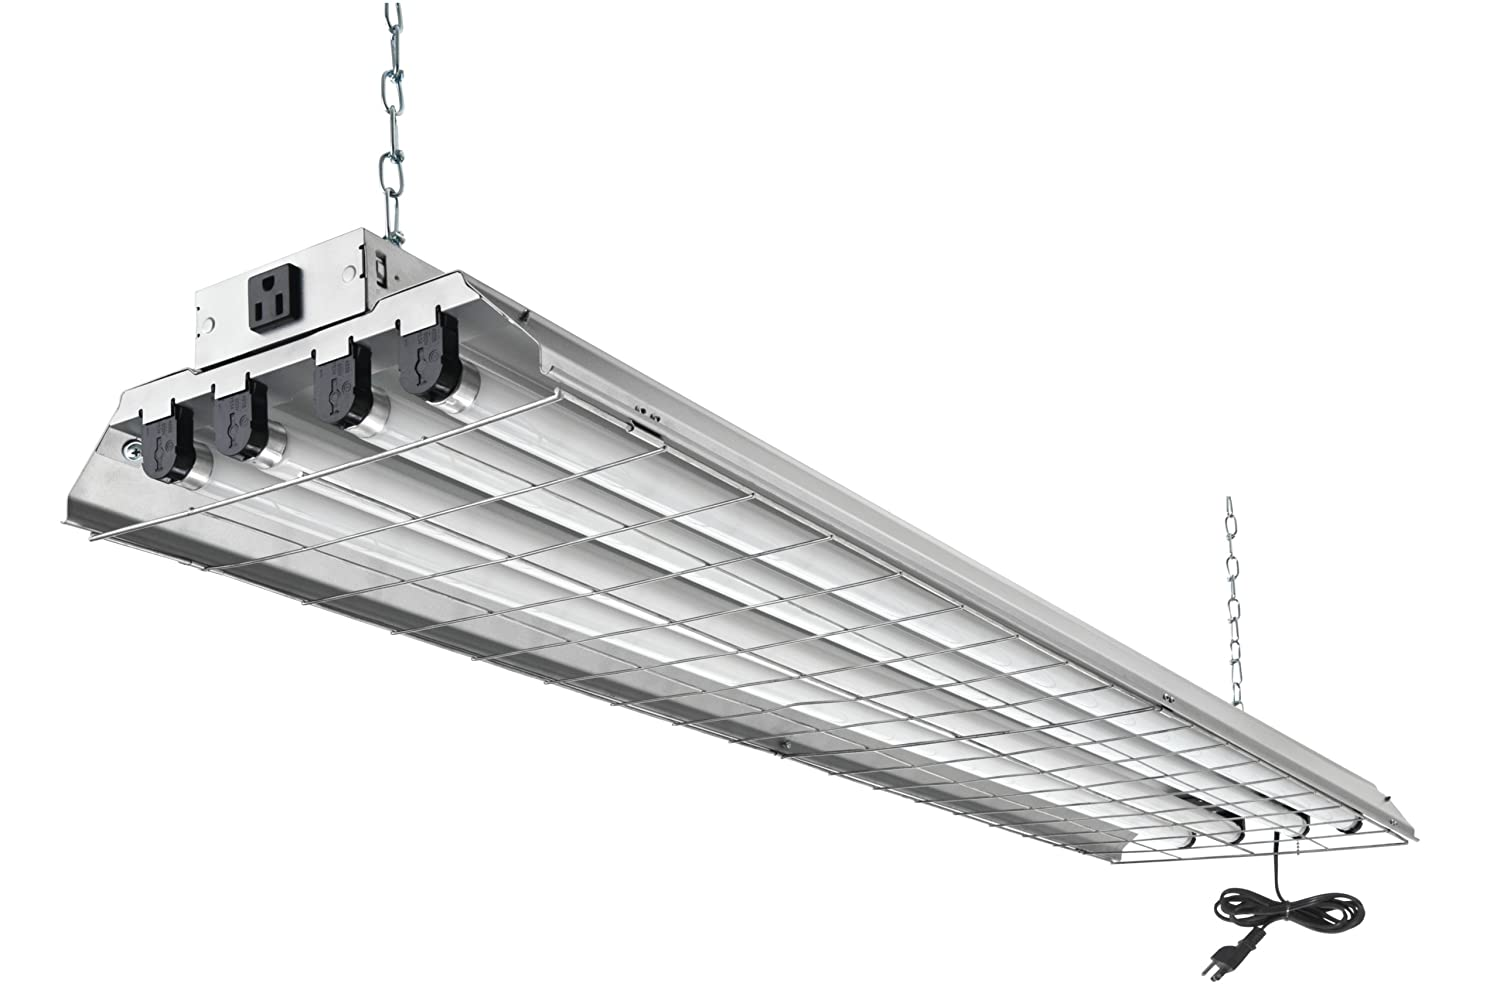 Amazon lithonia lighting 1284grd re 4 light heavy duty amazon lithonia lighting 1284grd re 4 light heavy duty shoplight home improvement arubaitofo Choice Image